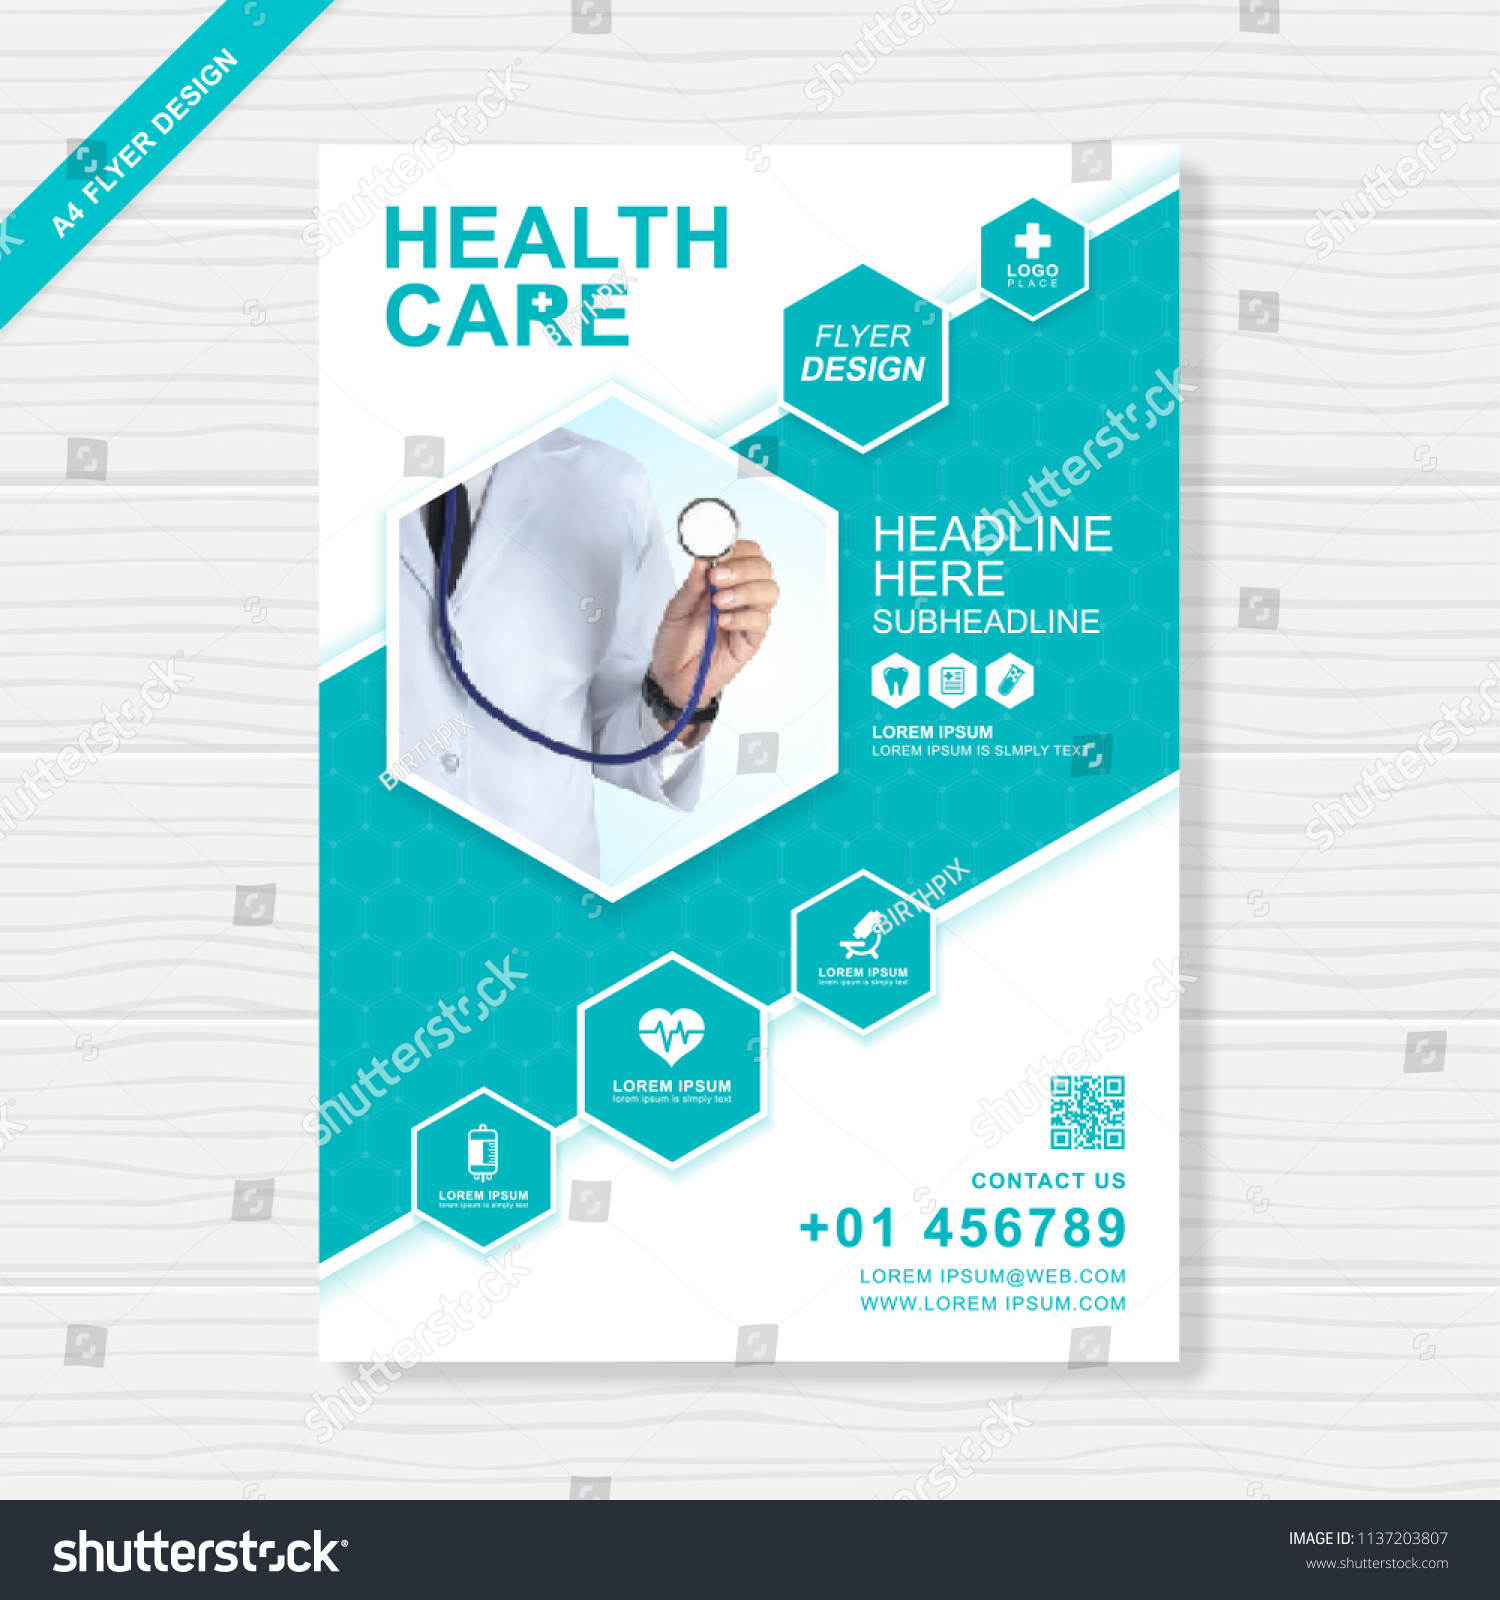 Healthcare Brochure | Health Care Cover Template Design Report Stock Vector Royalty Free